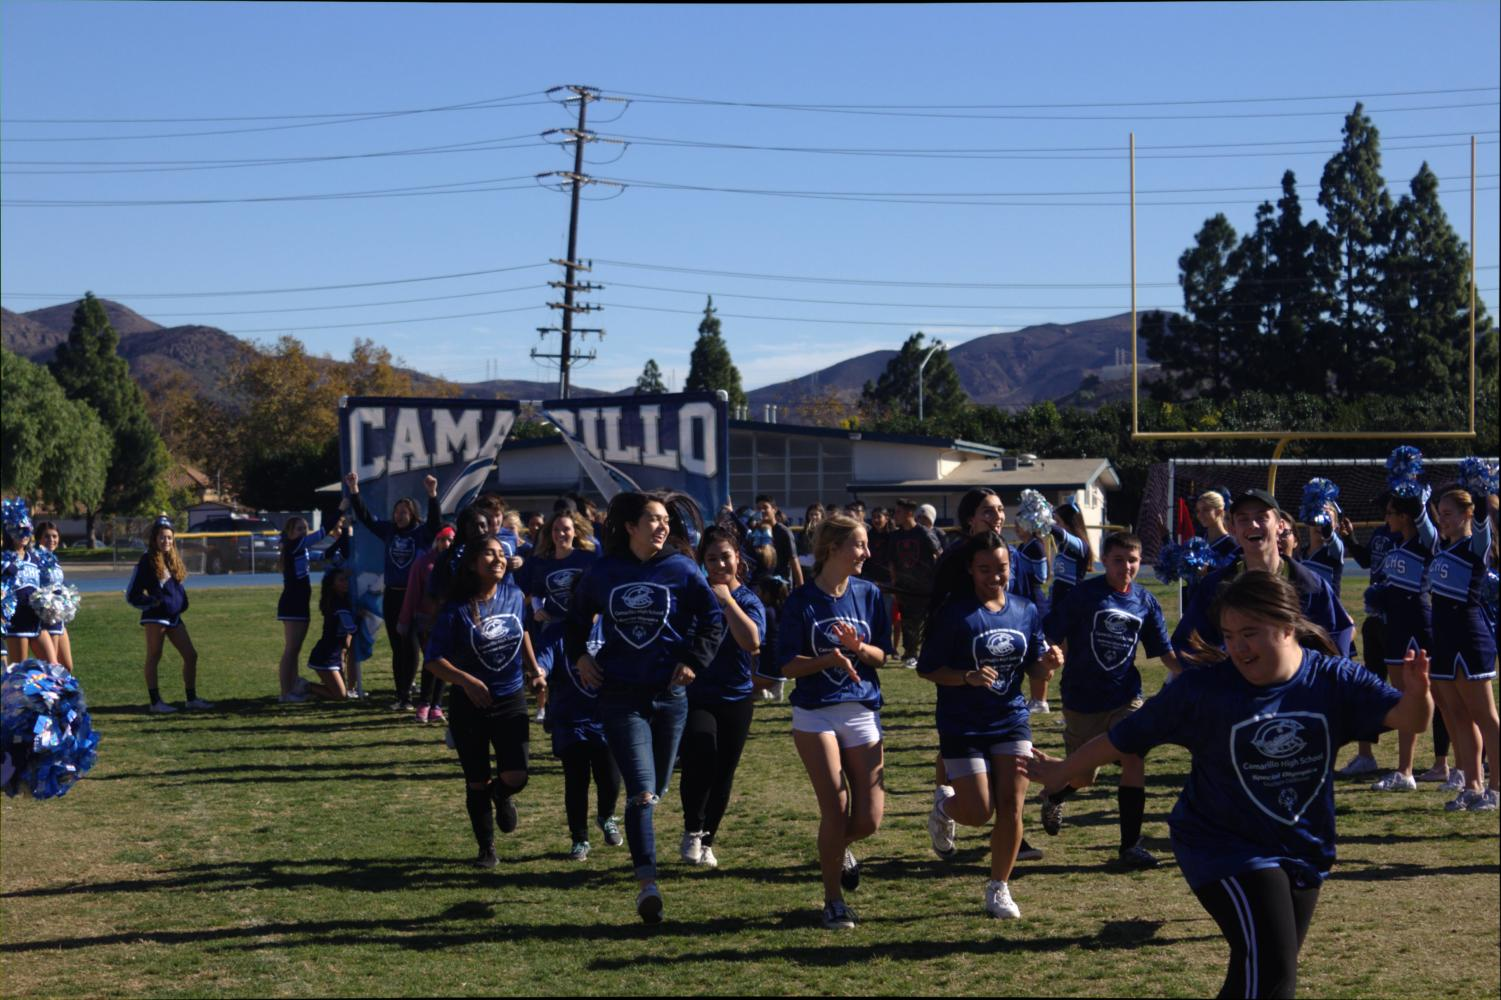 Special Ed and Regular Ed students kick off the Special Olympics soccer game by running through a Cam High banner on Dec. 4, 2018.